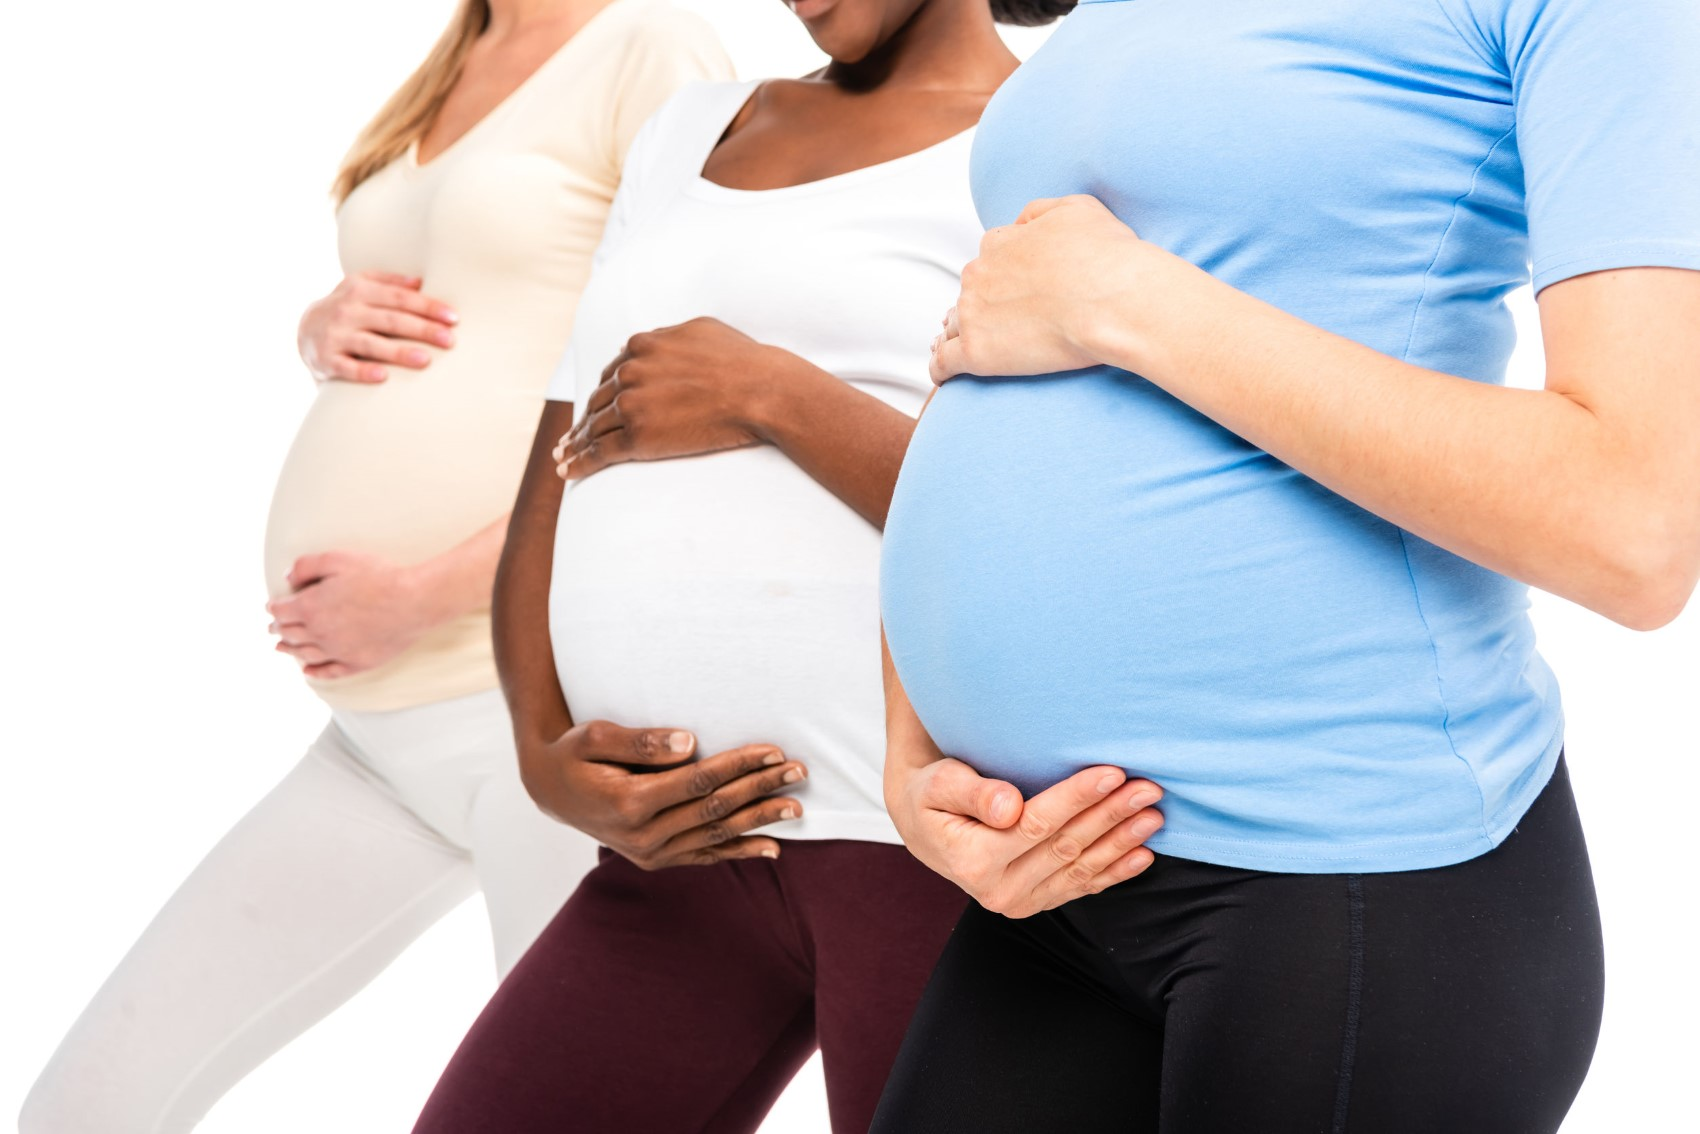 cropped view of three pregnant women holding hands on bellies - Aches and Pains in Pregnancy